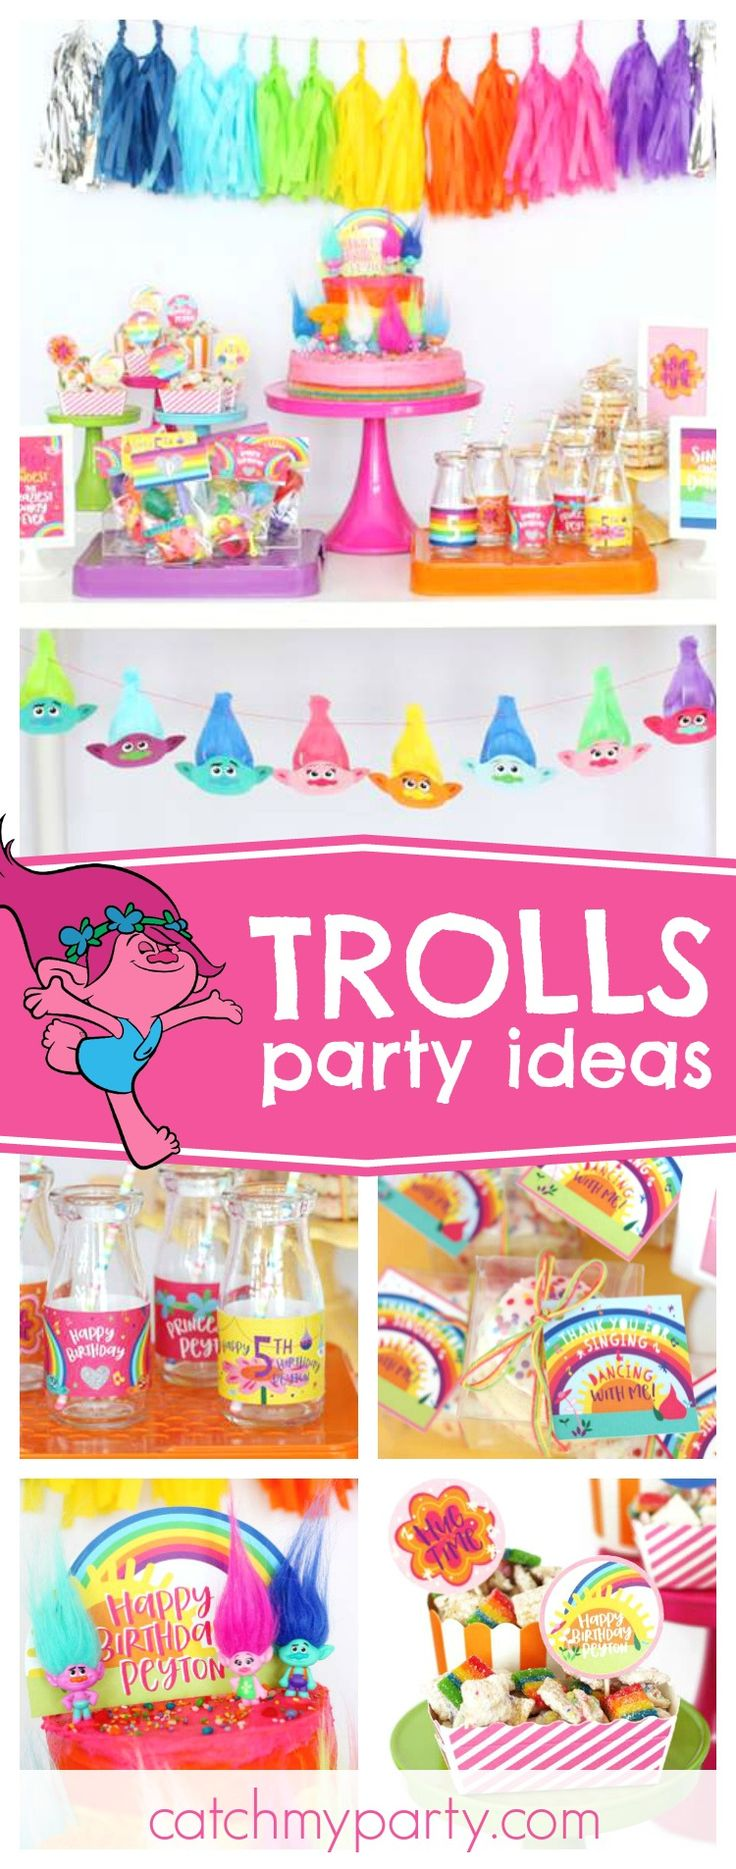 Check out this awesome colorful Trolls birthday party! Love the trolls garland!! See more party ideas and share yours at CatchMyParty.com